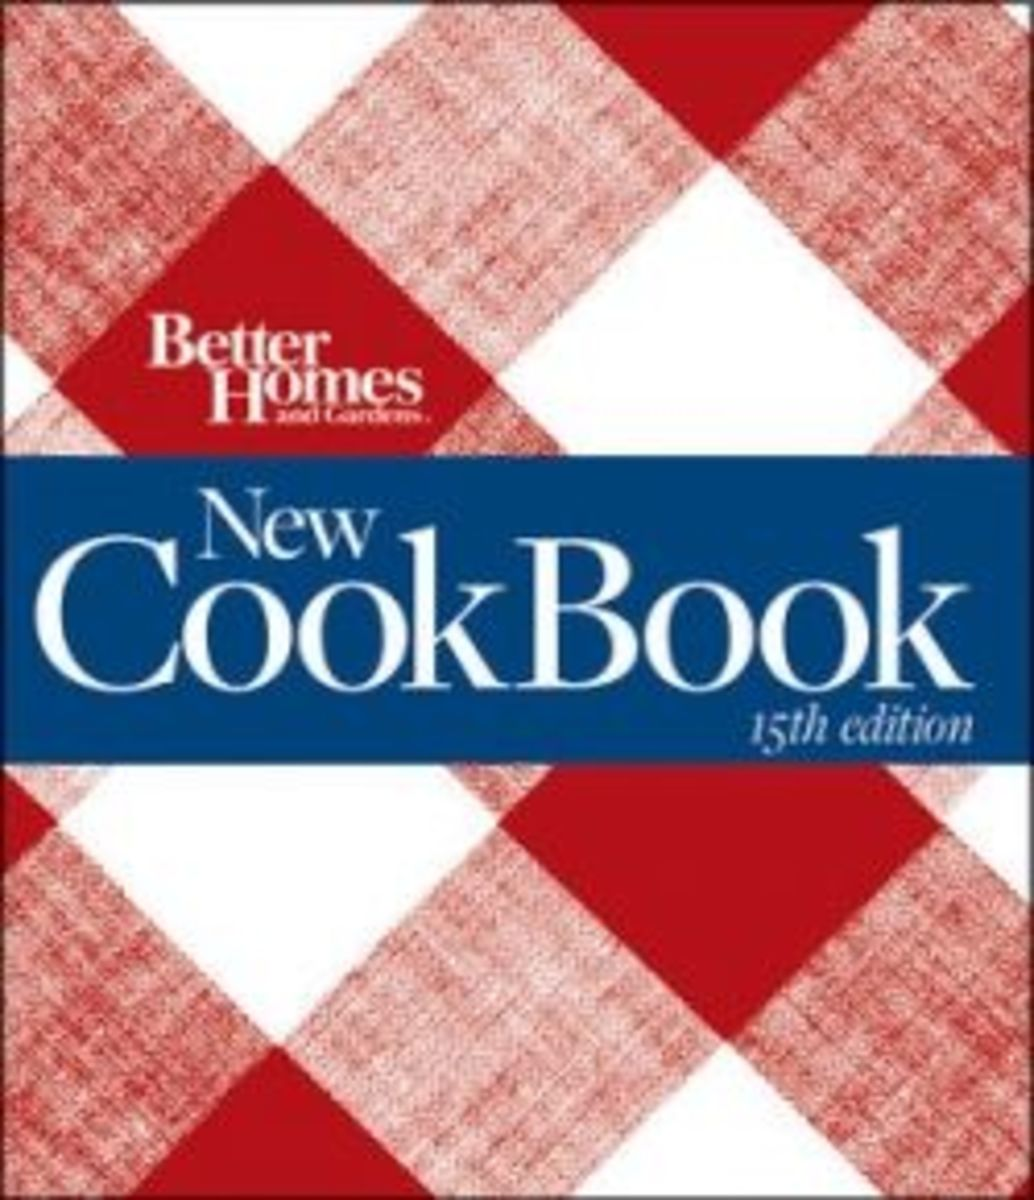 80 years  of cooking; 15th Edition 2010